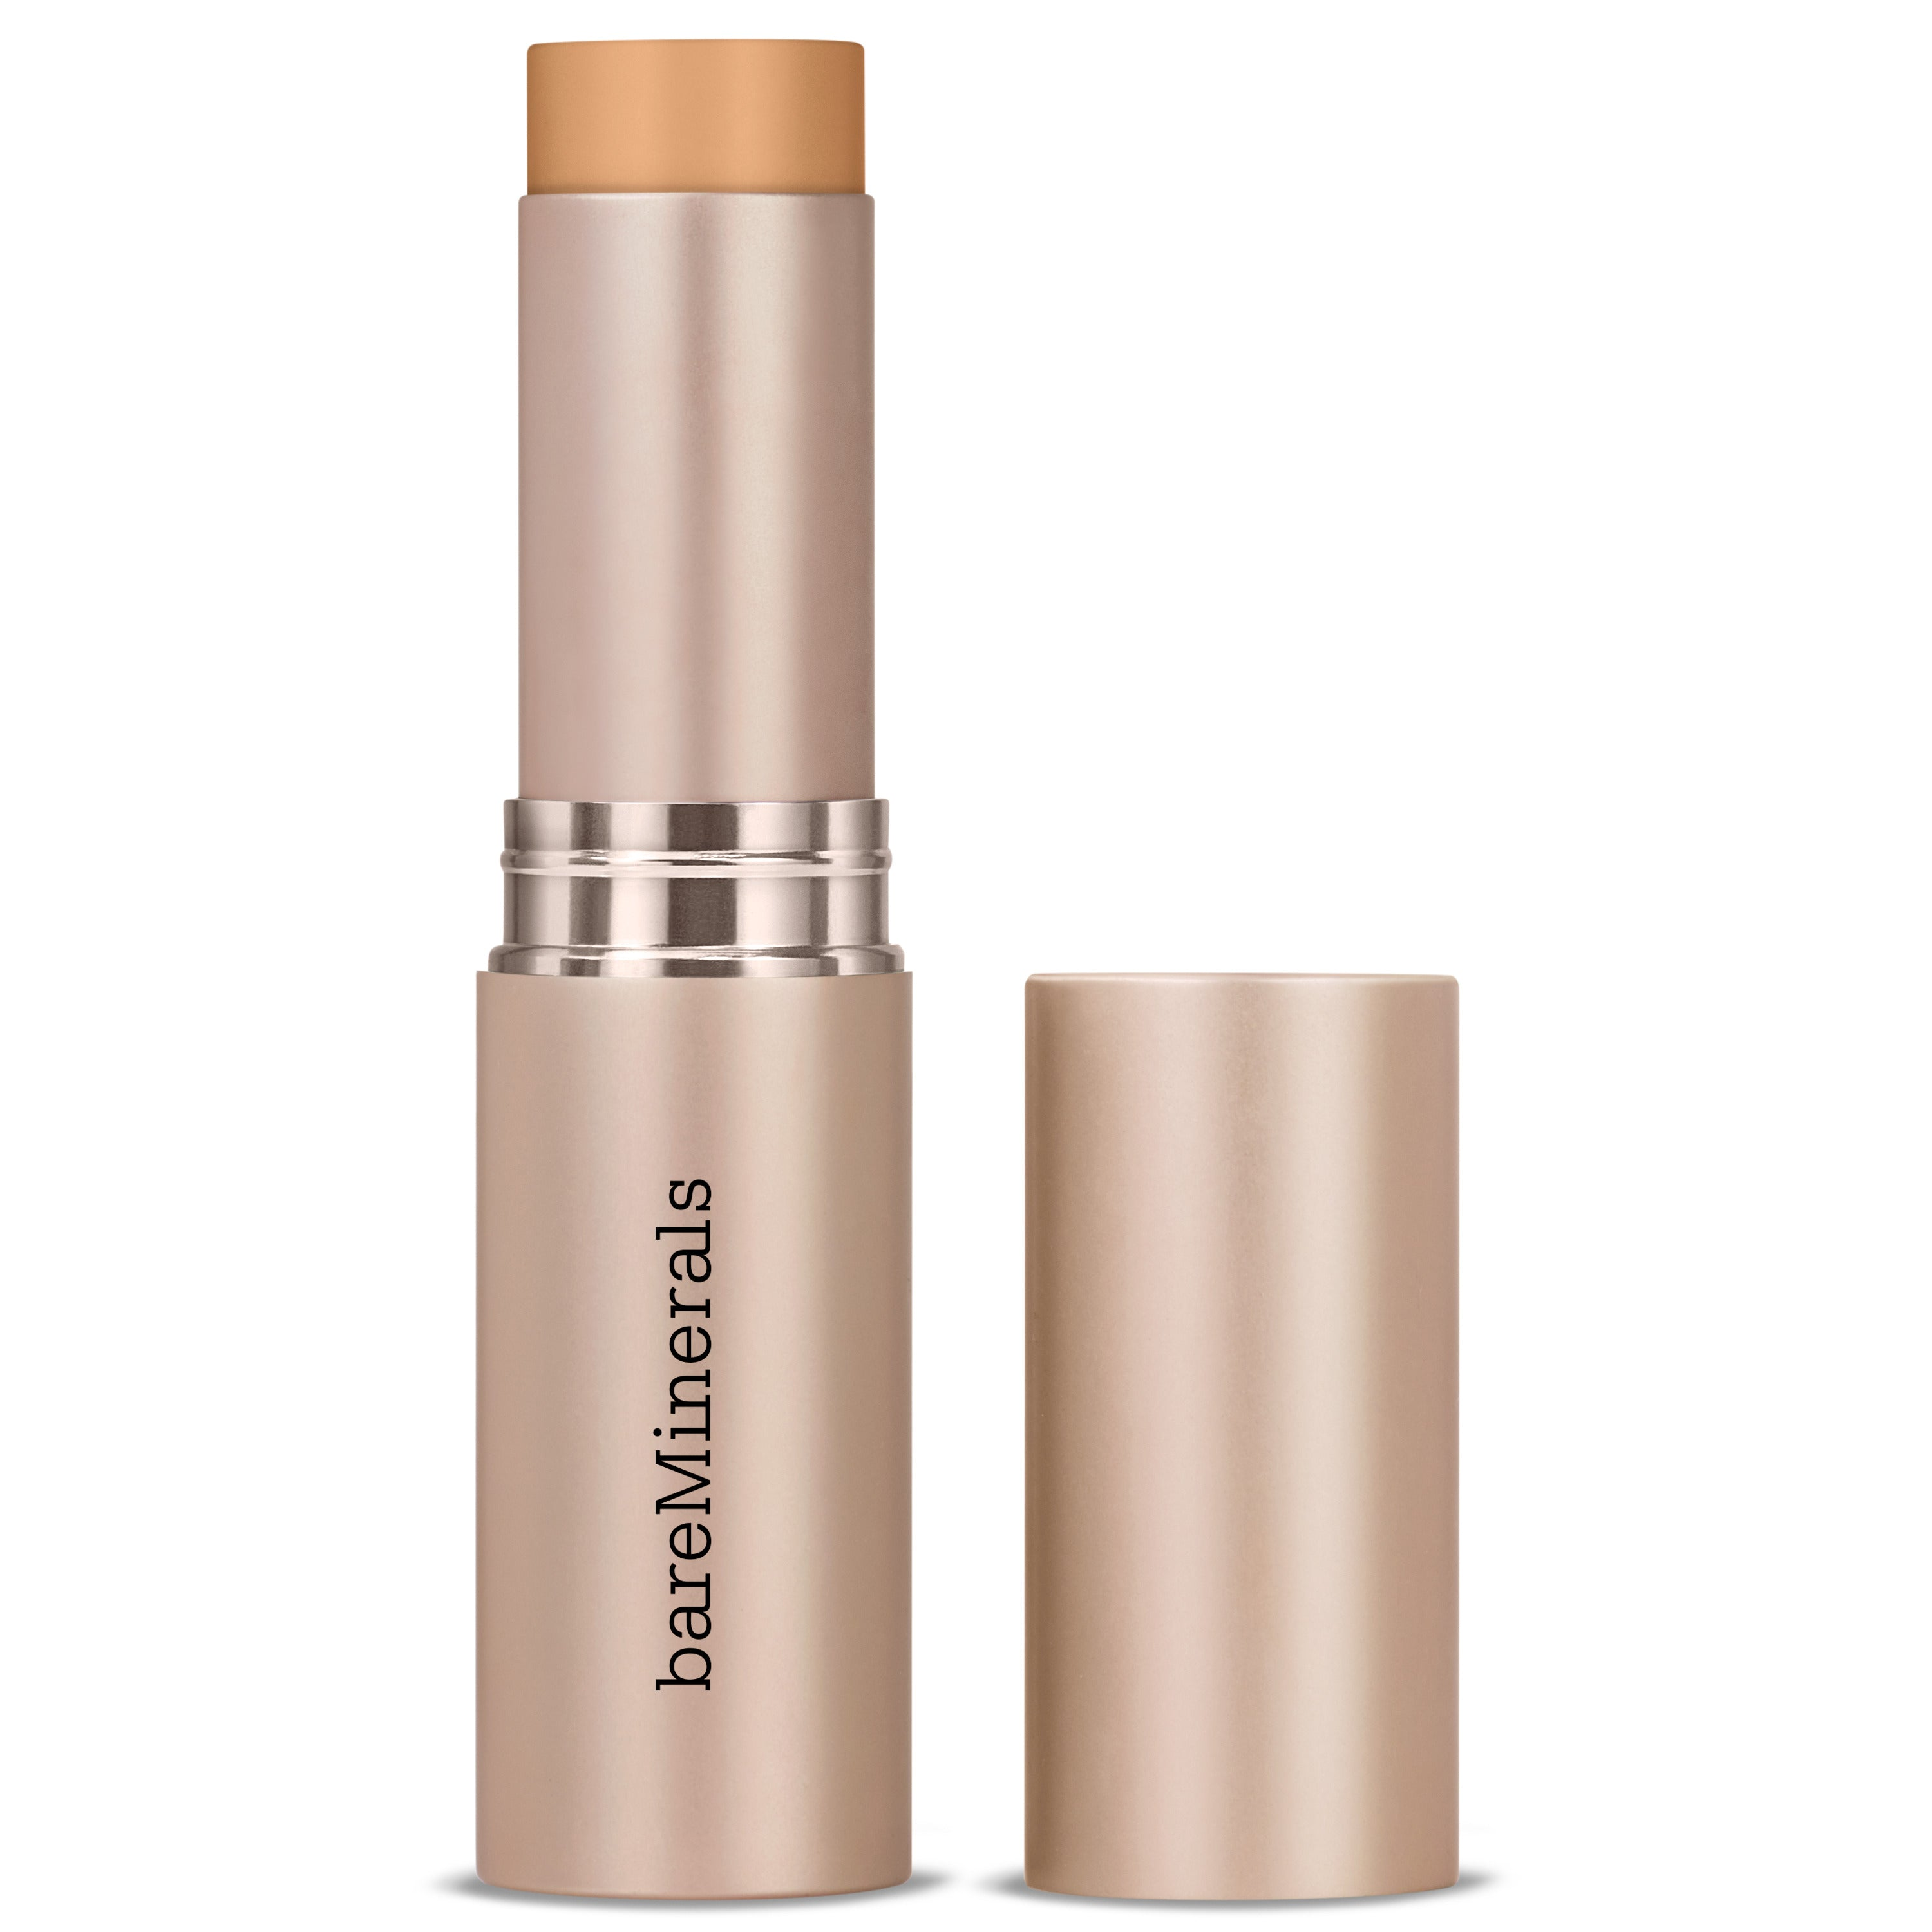 Complexion Rescue Hydrating Foundation Stick SPF 25 Spice 08